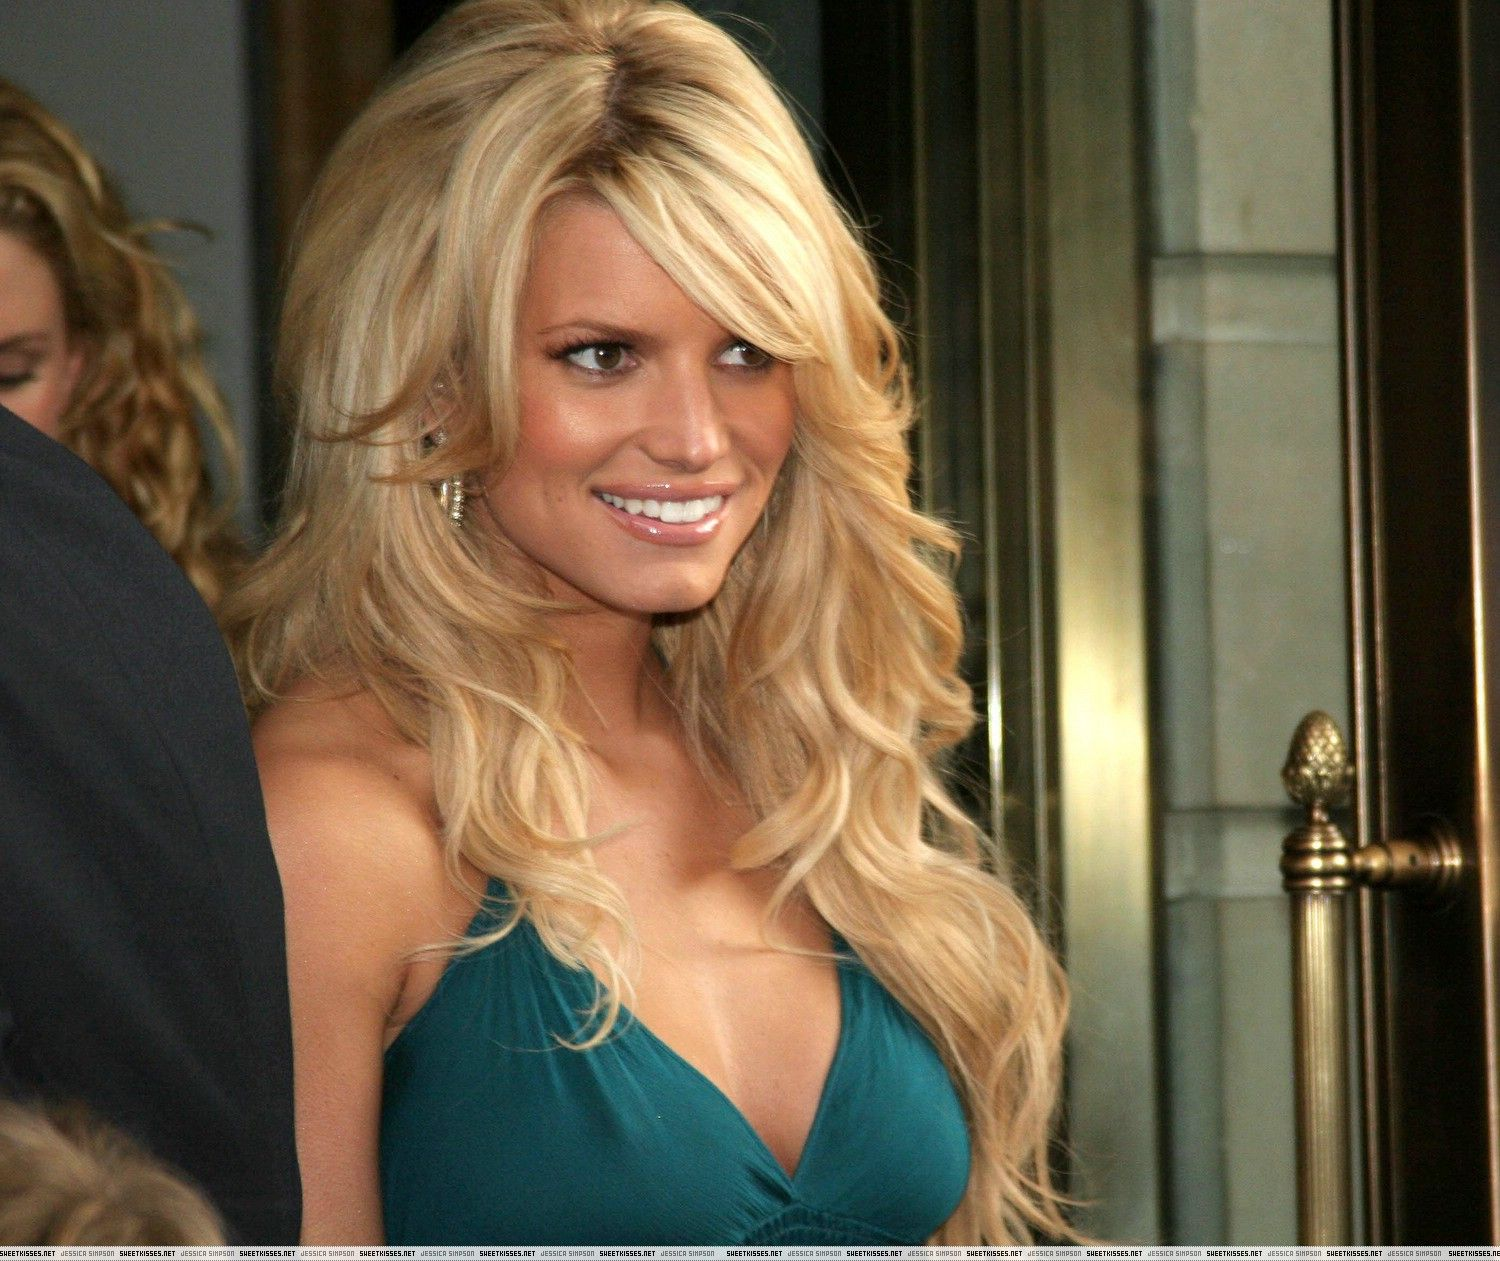 Pin By Chelsea Blair On Looks Hair Big Teased Jessica Simpson Hair Extensions Jessica Simpson Hair Teased Hair